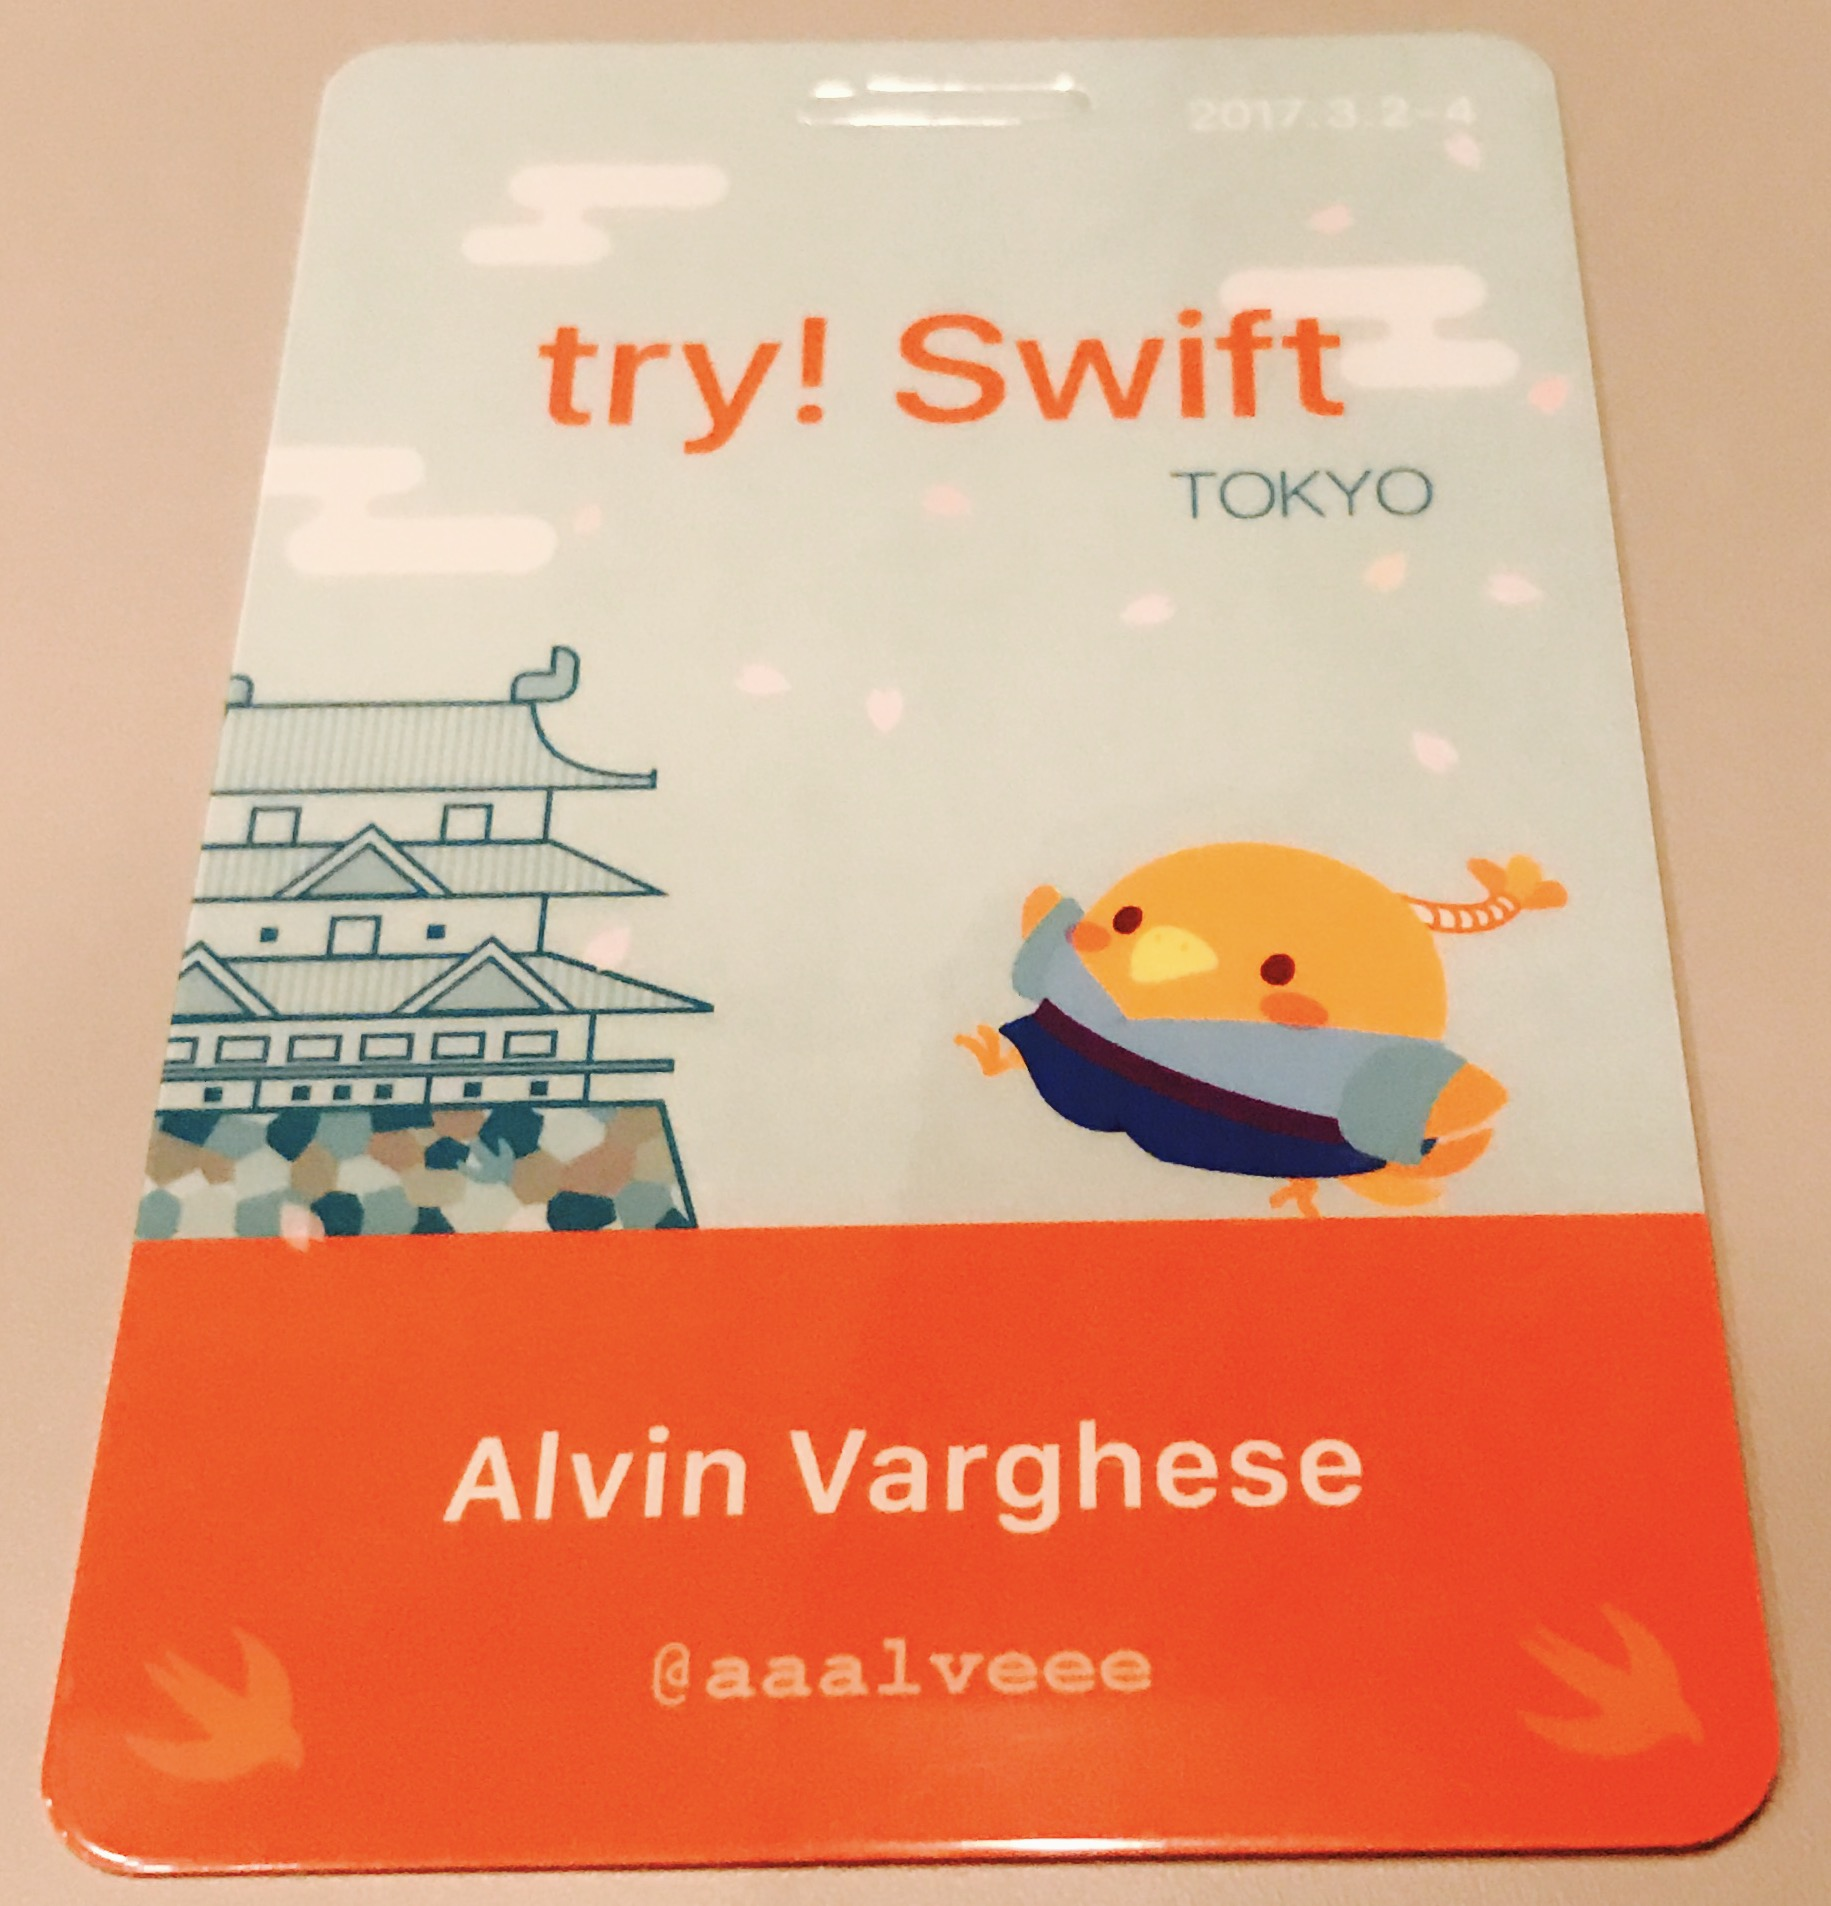 try! Swift Tokyo Conference Bandge